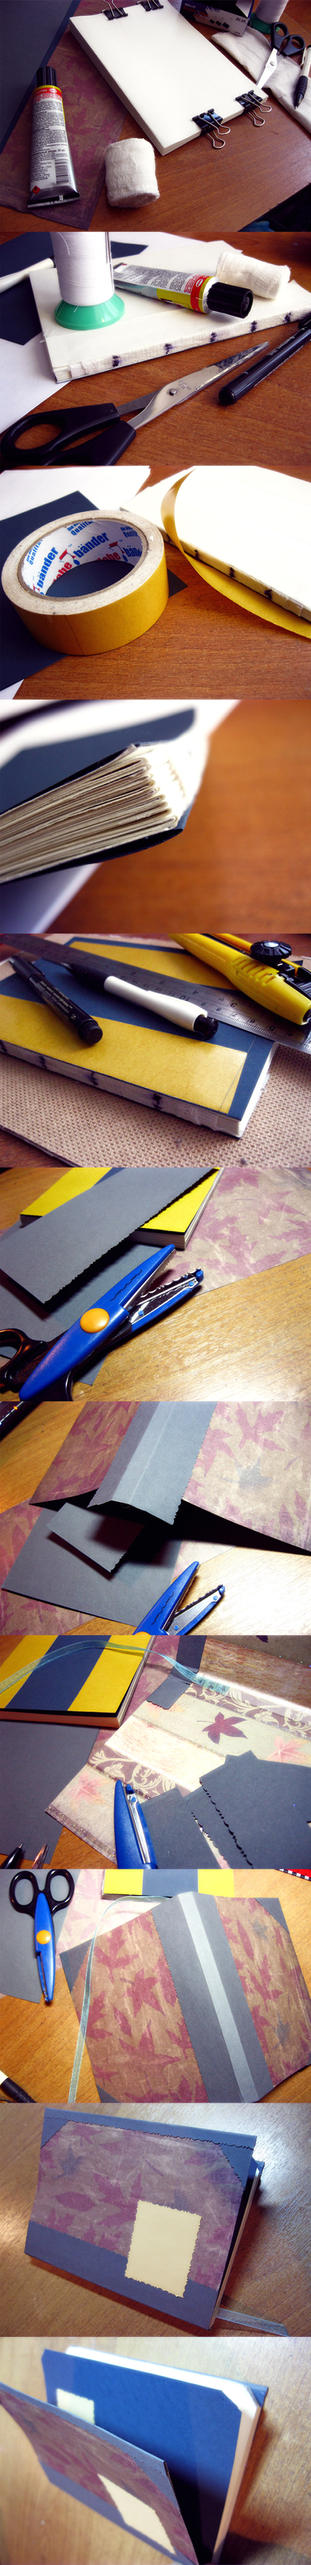 How to make sketchbook. Steps by Piromanova